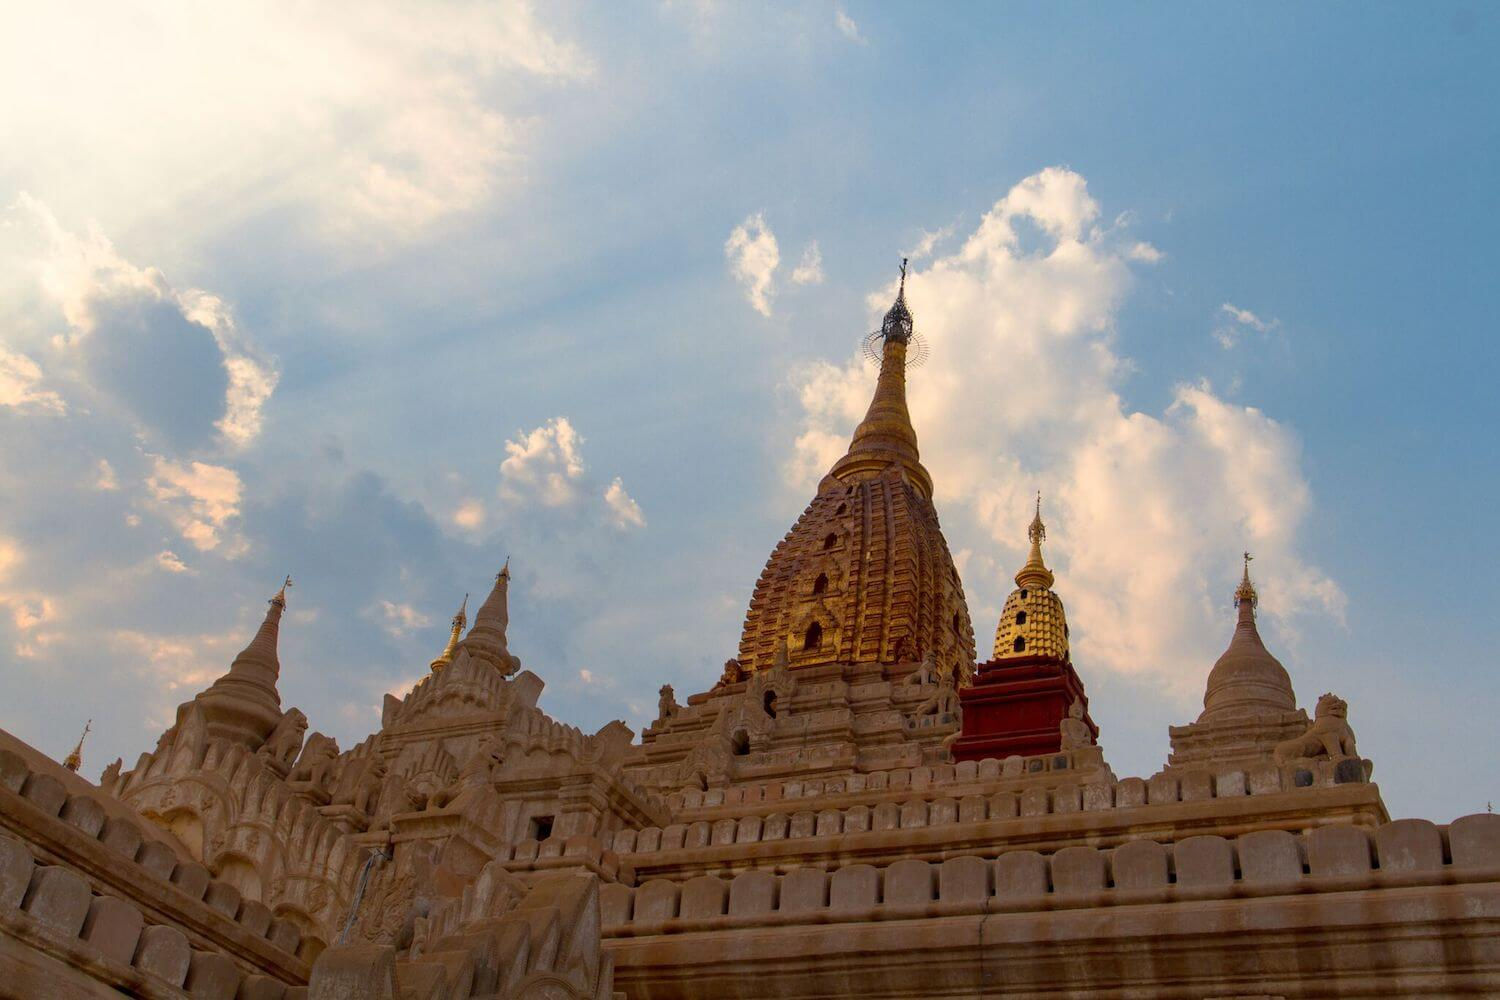 Best Myanmar Itinerary: Photo of a temple in Bagan Myanmar topped with gold and made of white stone shining in the sunlight. Photo taken by Ryan Brown of Lost Boy Memoirs, edited in Adobe Lightroom.